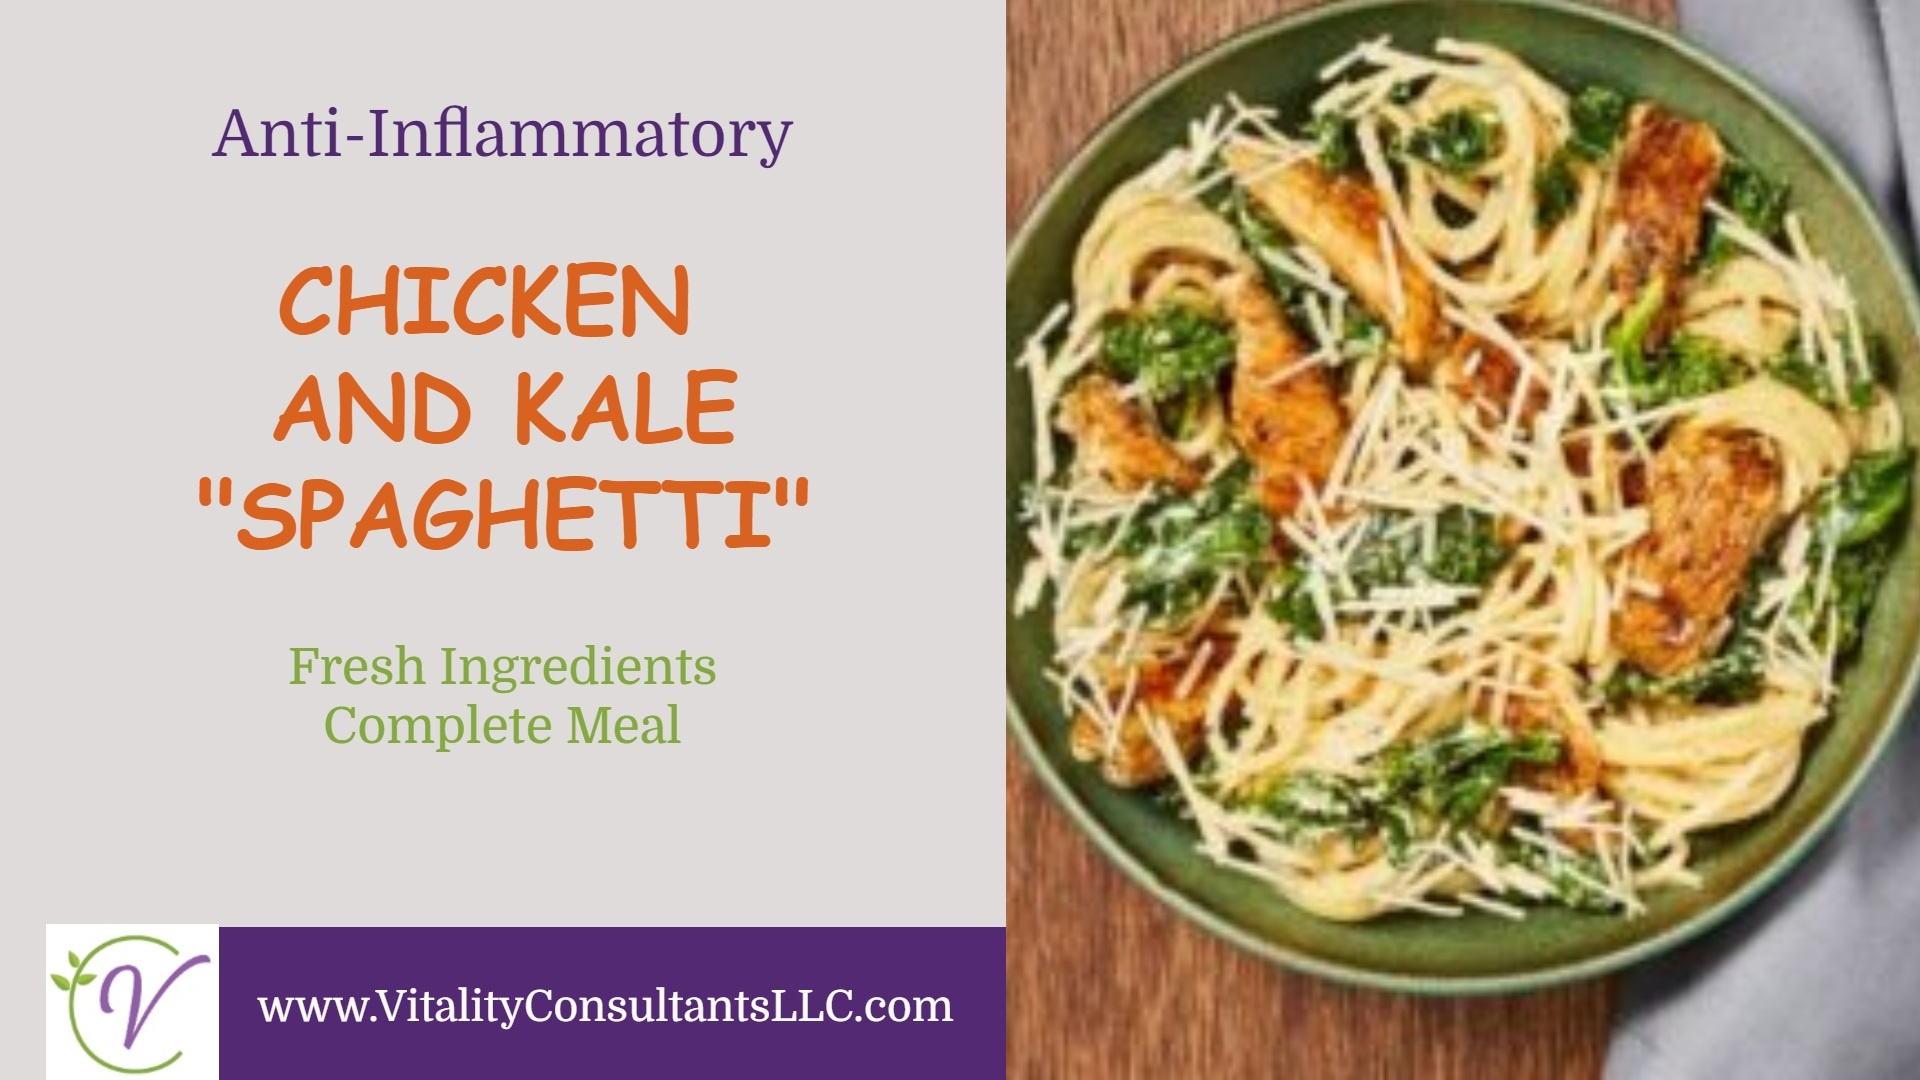 Chicken and Kale Spaghetti